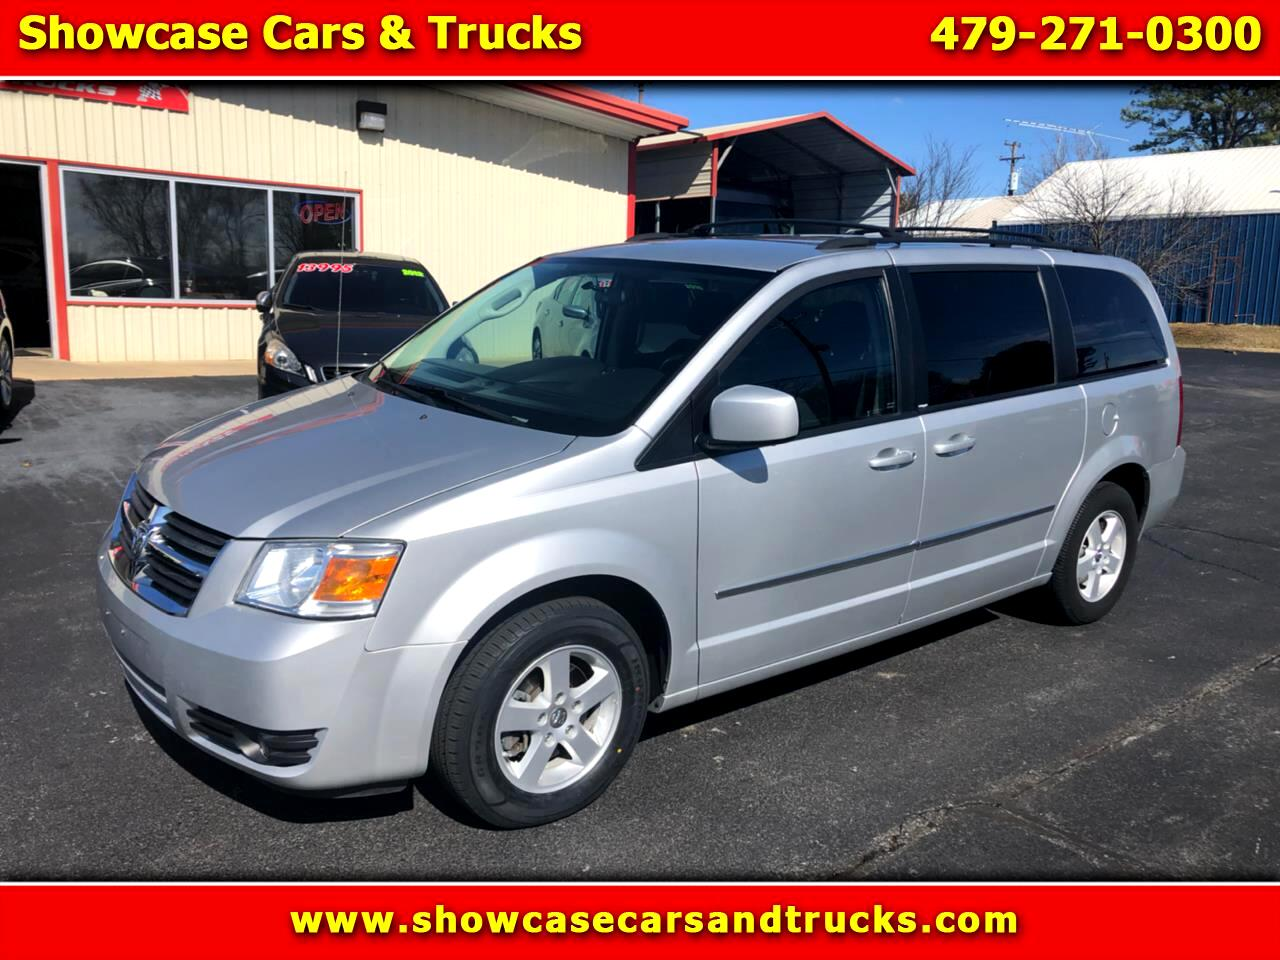 2010 Dodge Grand Caravan 4dr Wgn SXT